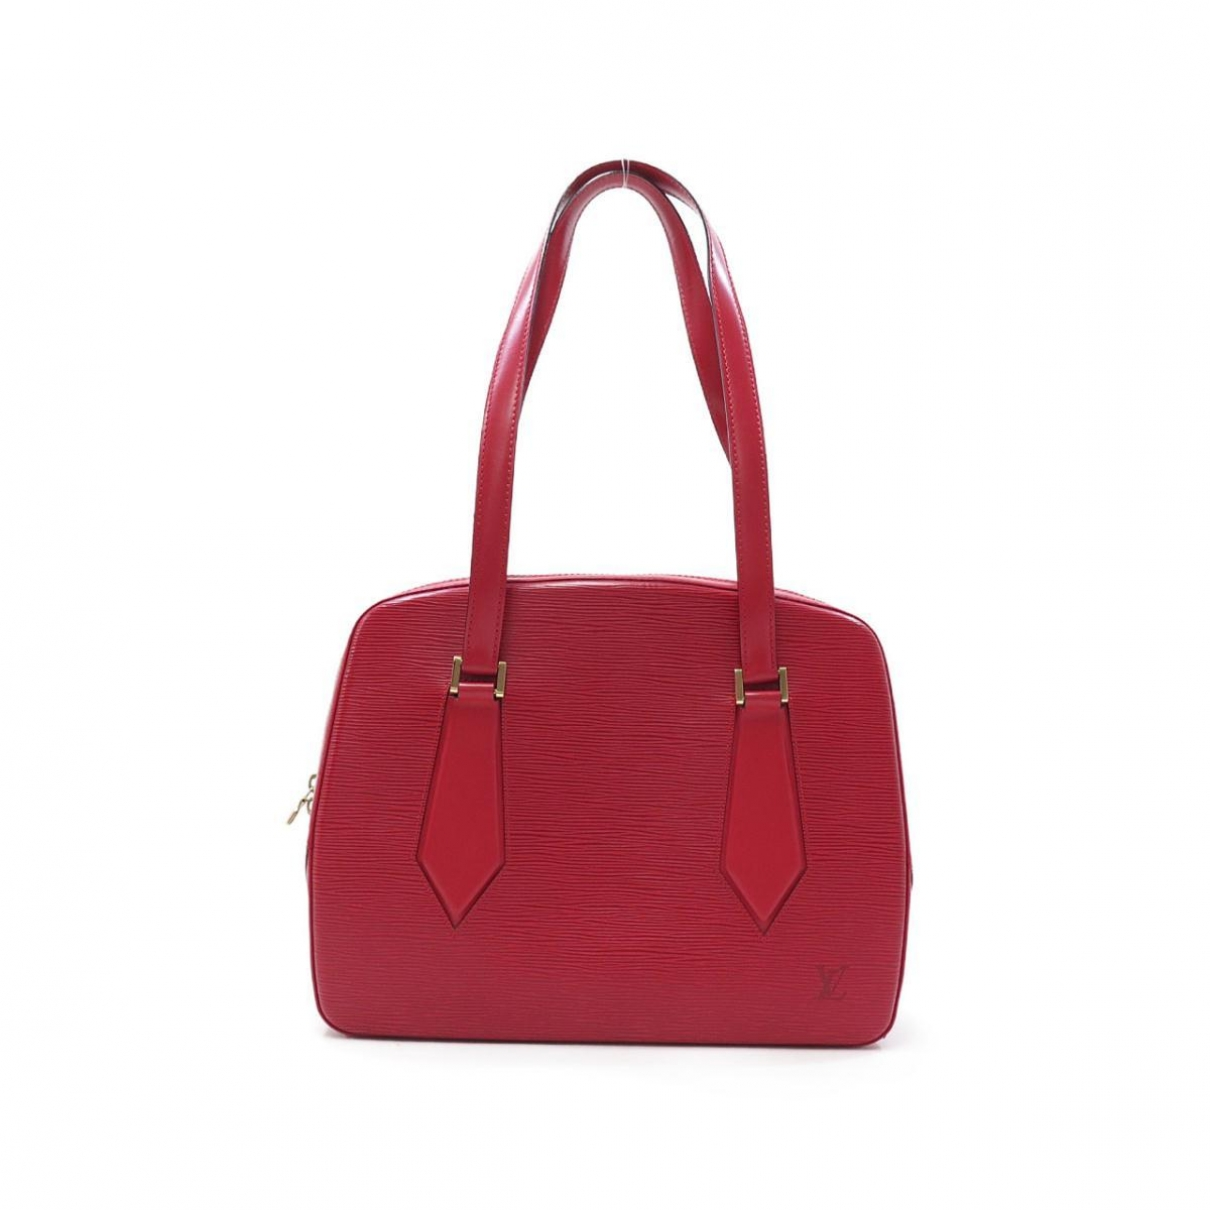 Louis Vuitton \N Handtasche in  Rot Leder